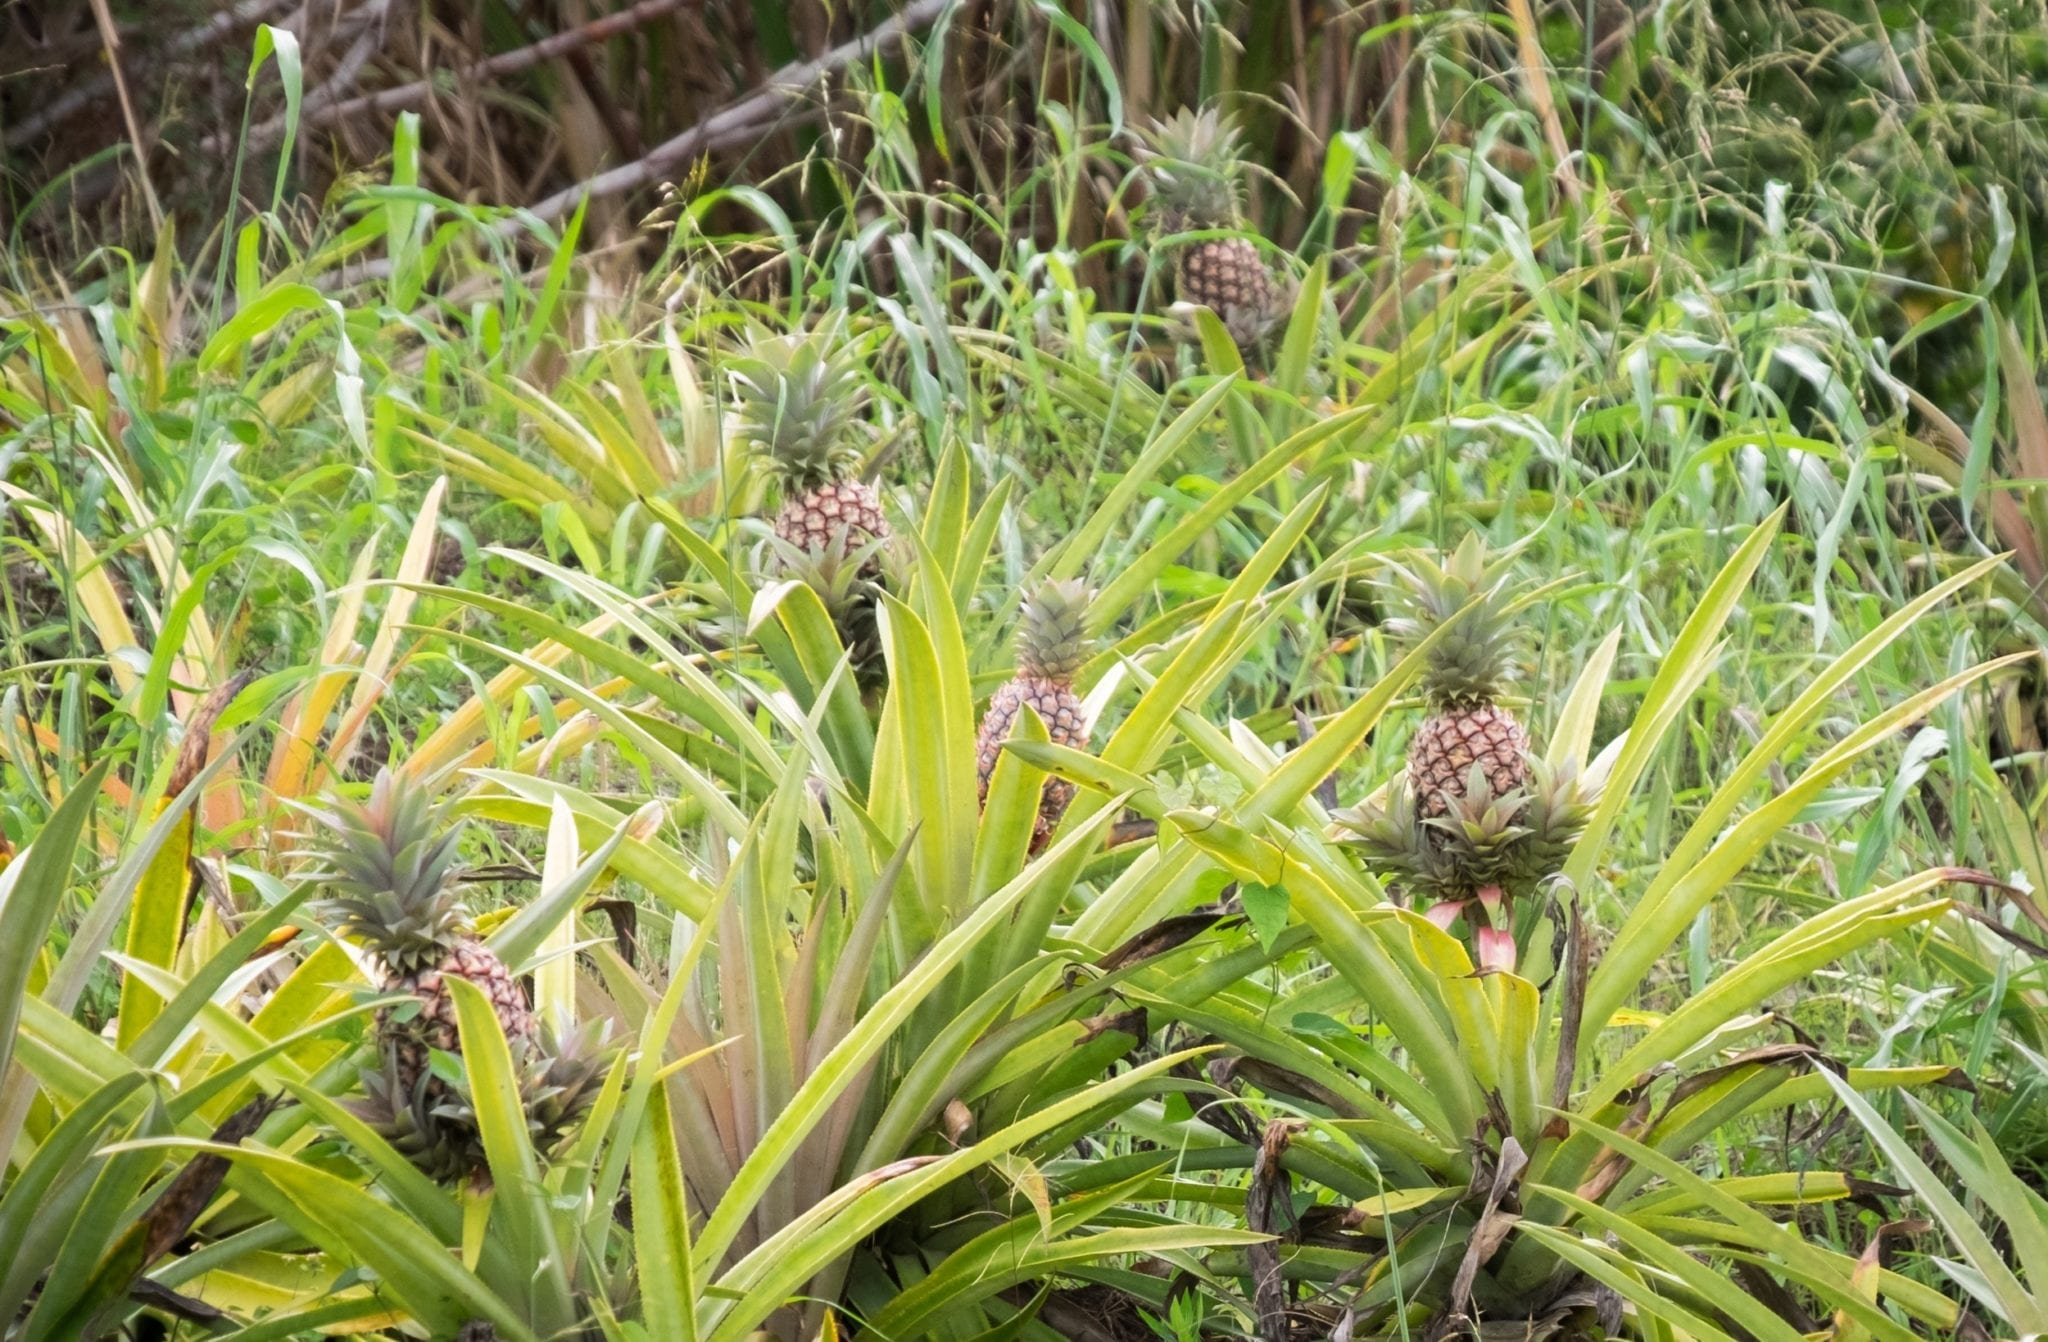 Palms on the side of the road in Antigua. Tiny growing pineapples are springing up from each bush.